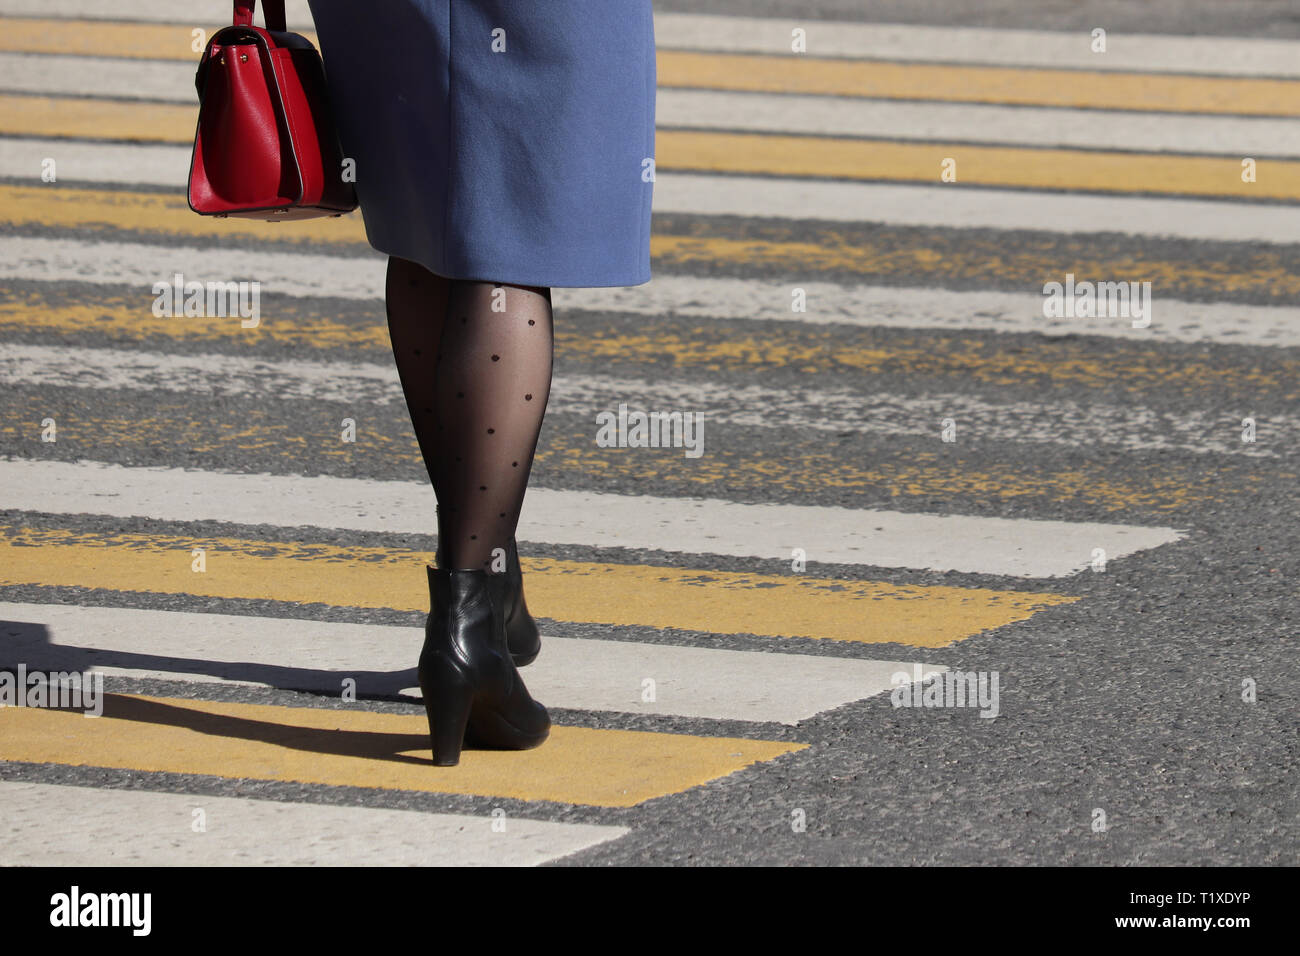 Woman walking on pedestrian crossing, rear view. Female legs in fashionable stockings and black shoes on high heels on the crosswalk, street safety - Stock Image